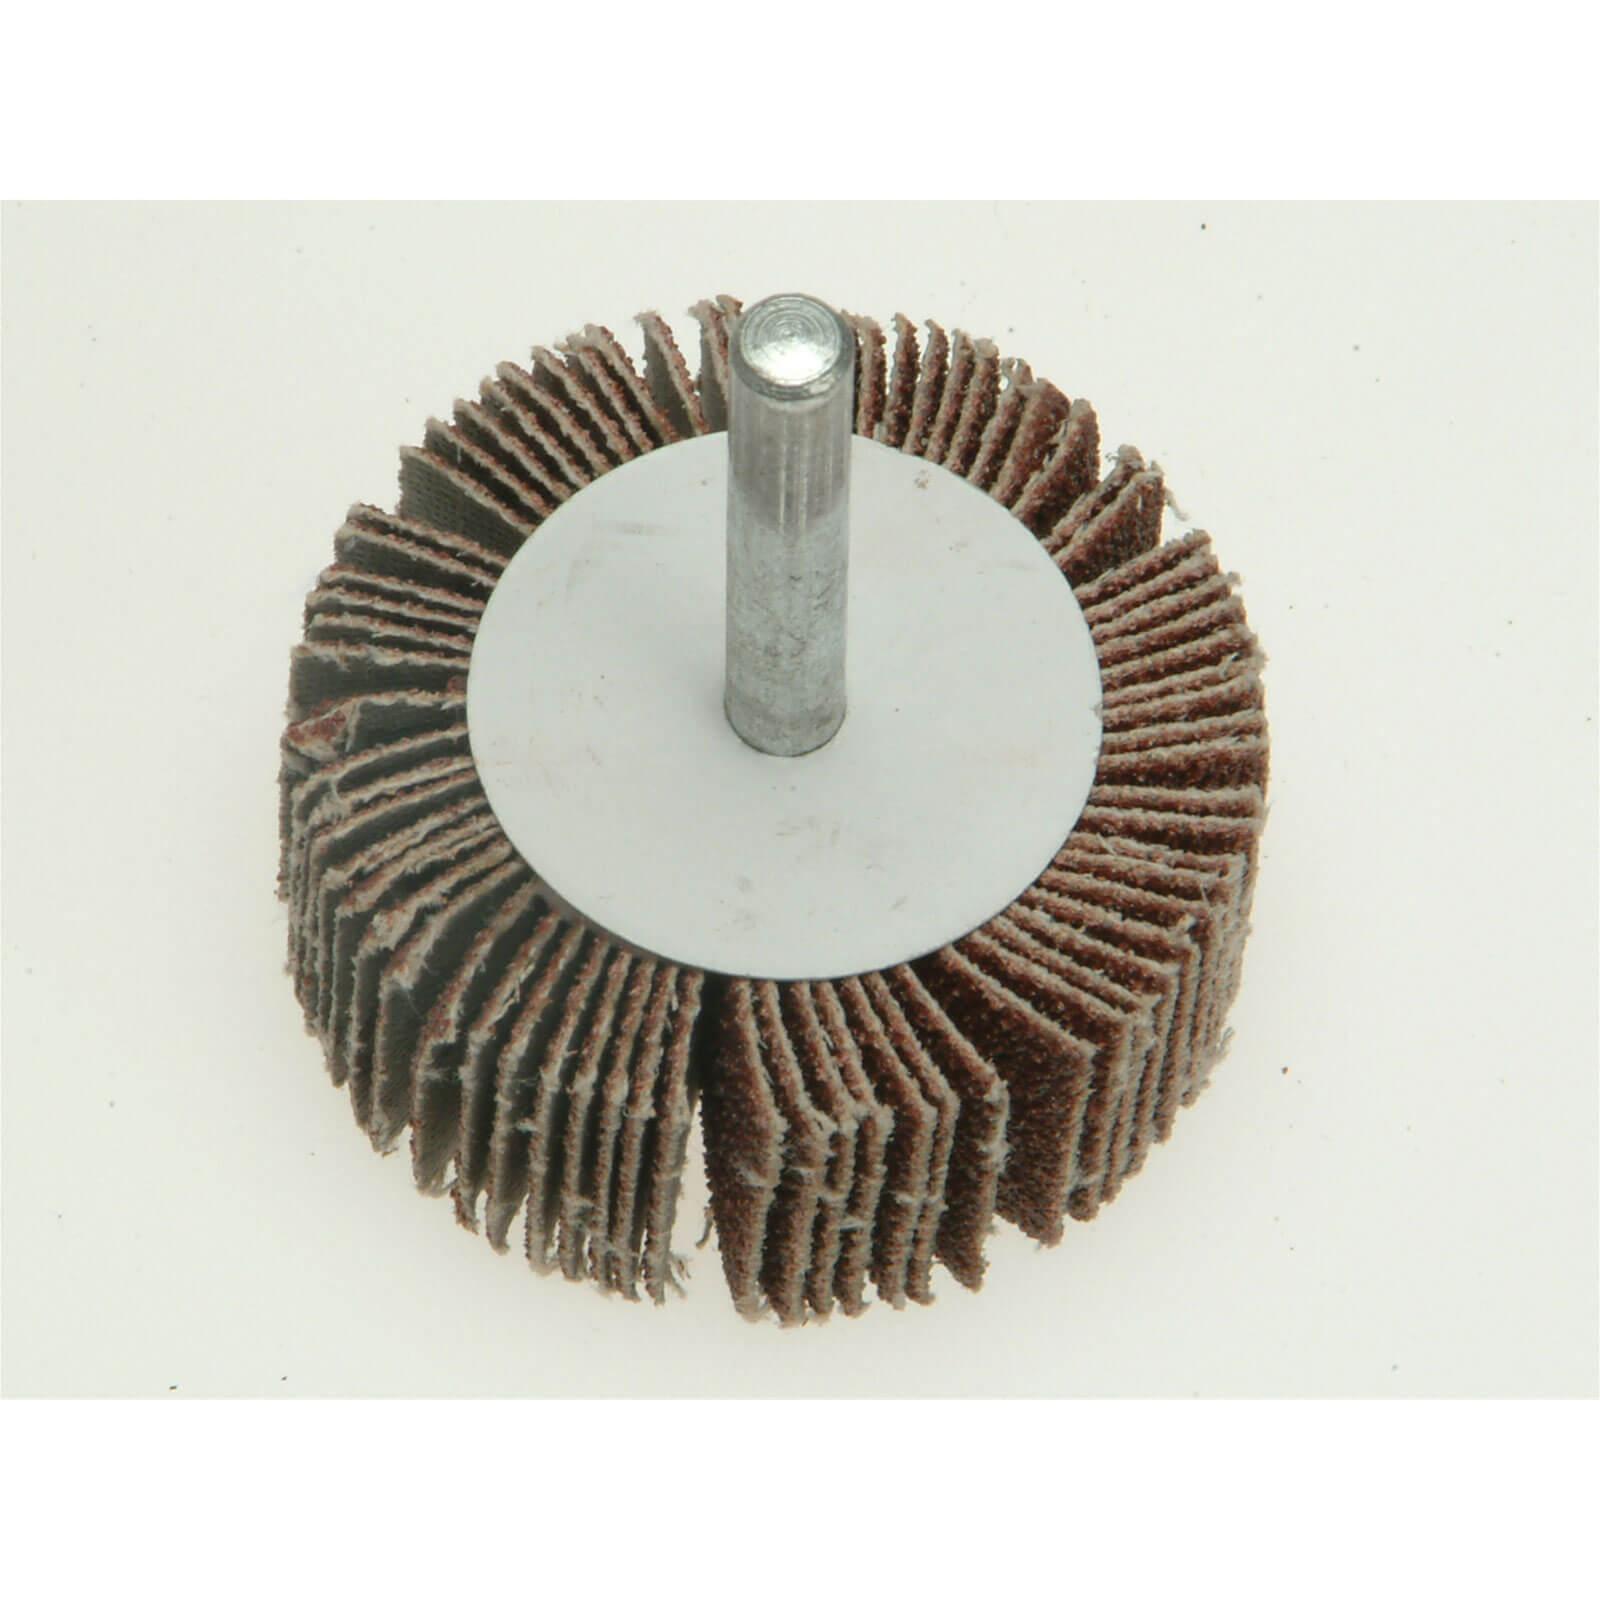 Image of Faithfull Abrasive Flap Wheel 50mm 20mm 100g